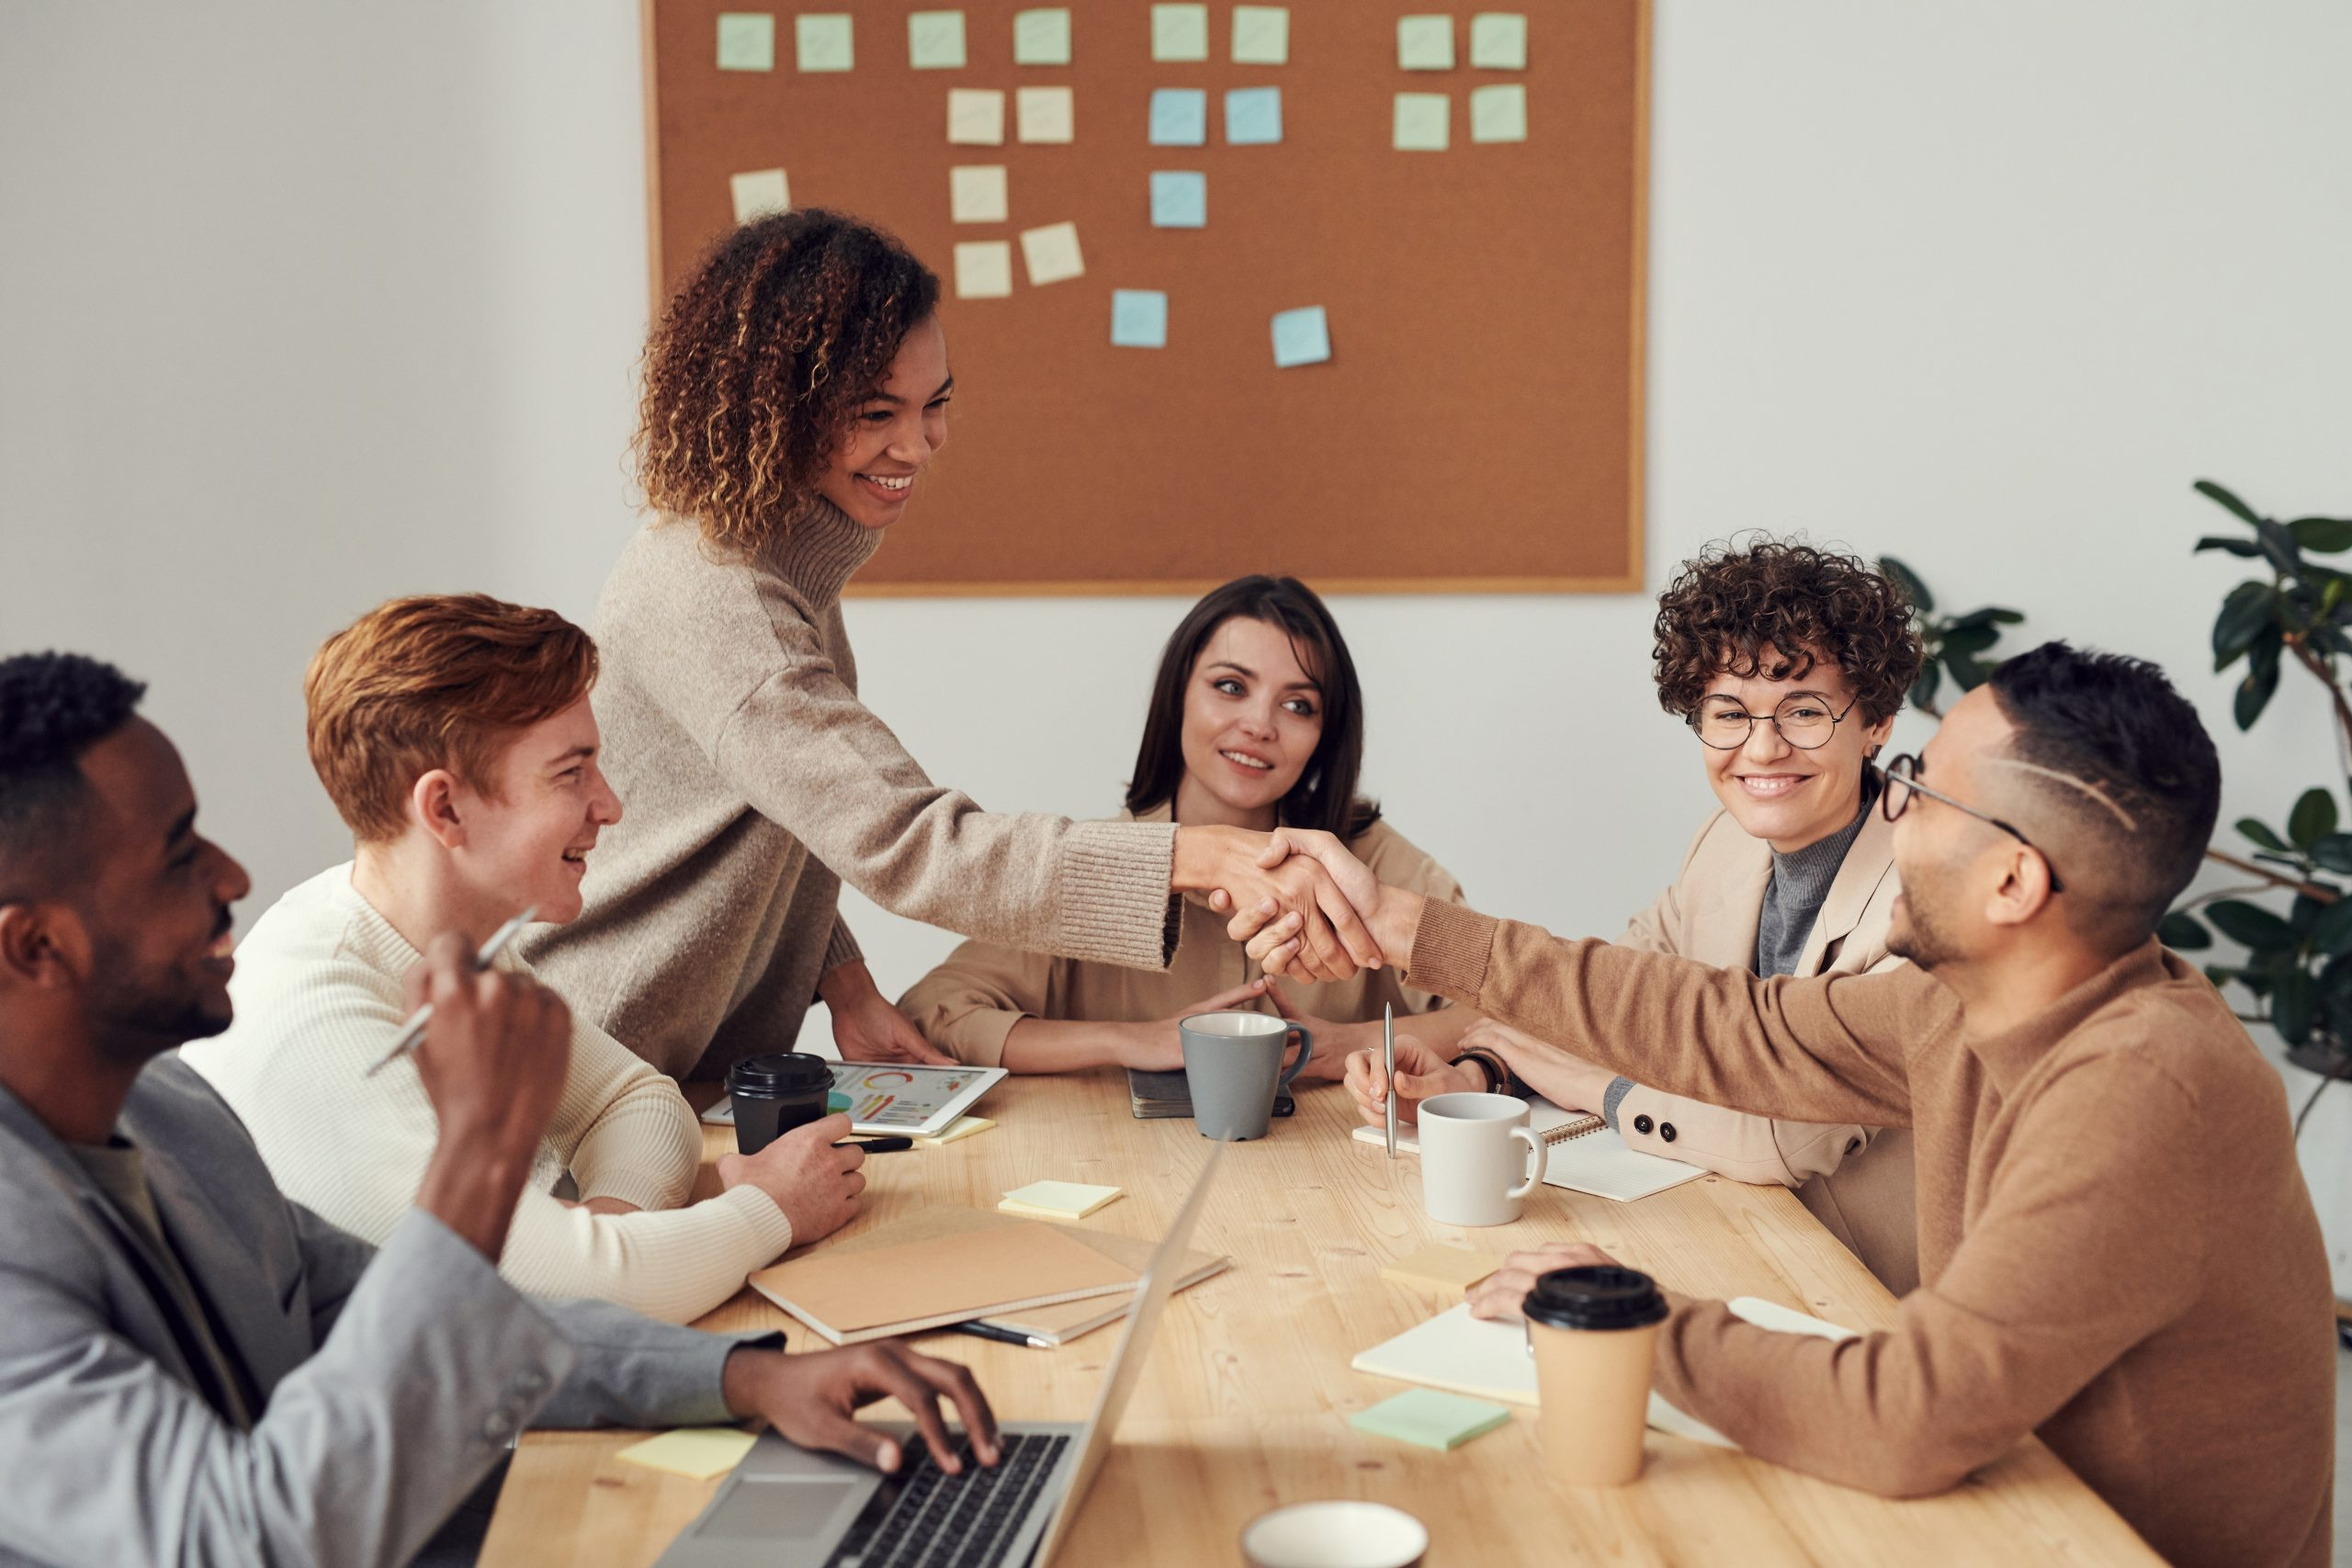 6 Ways to Keep Up Office Morale